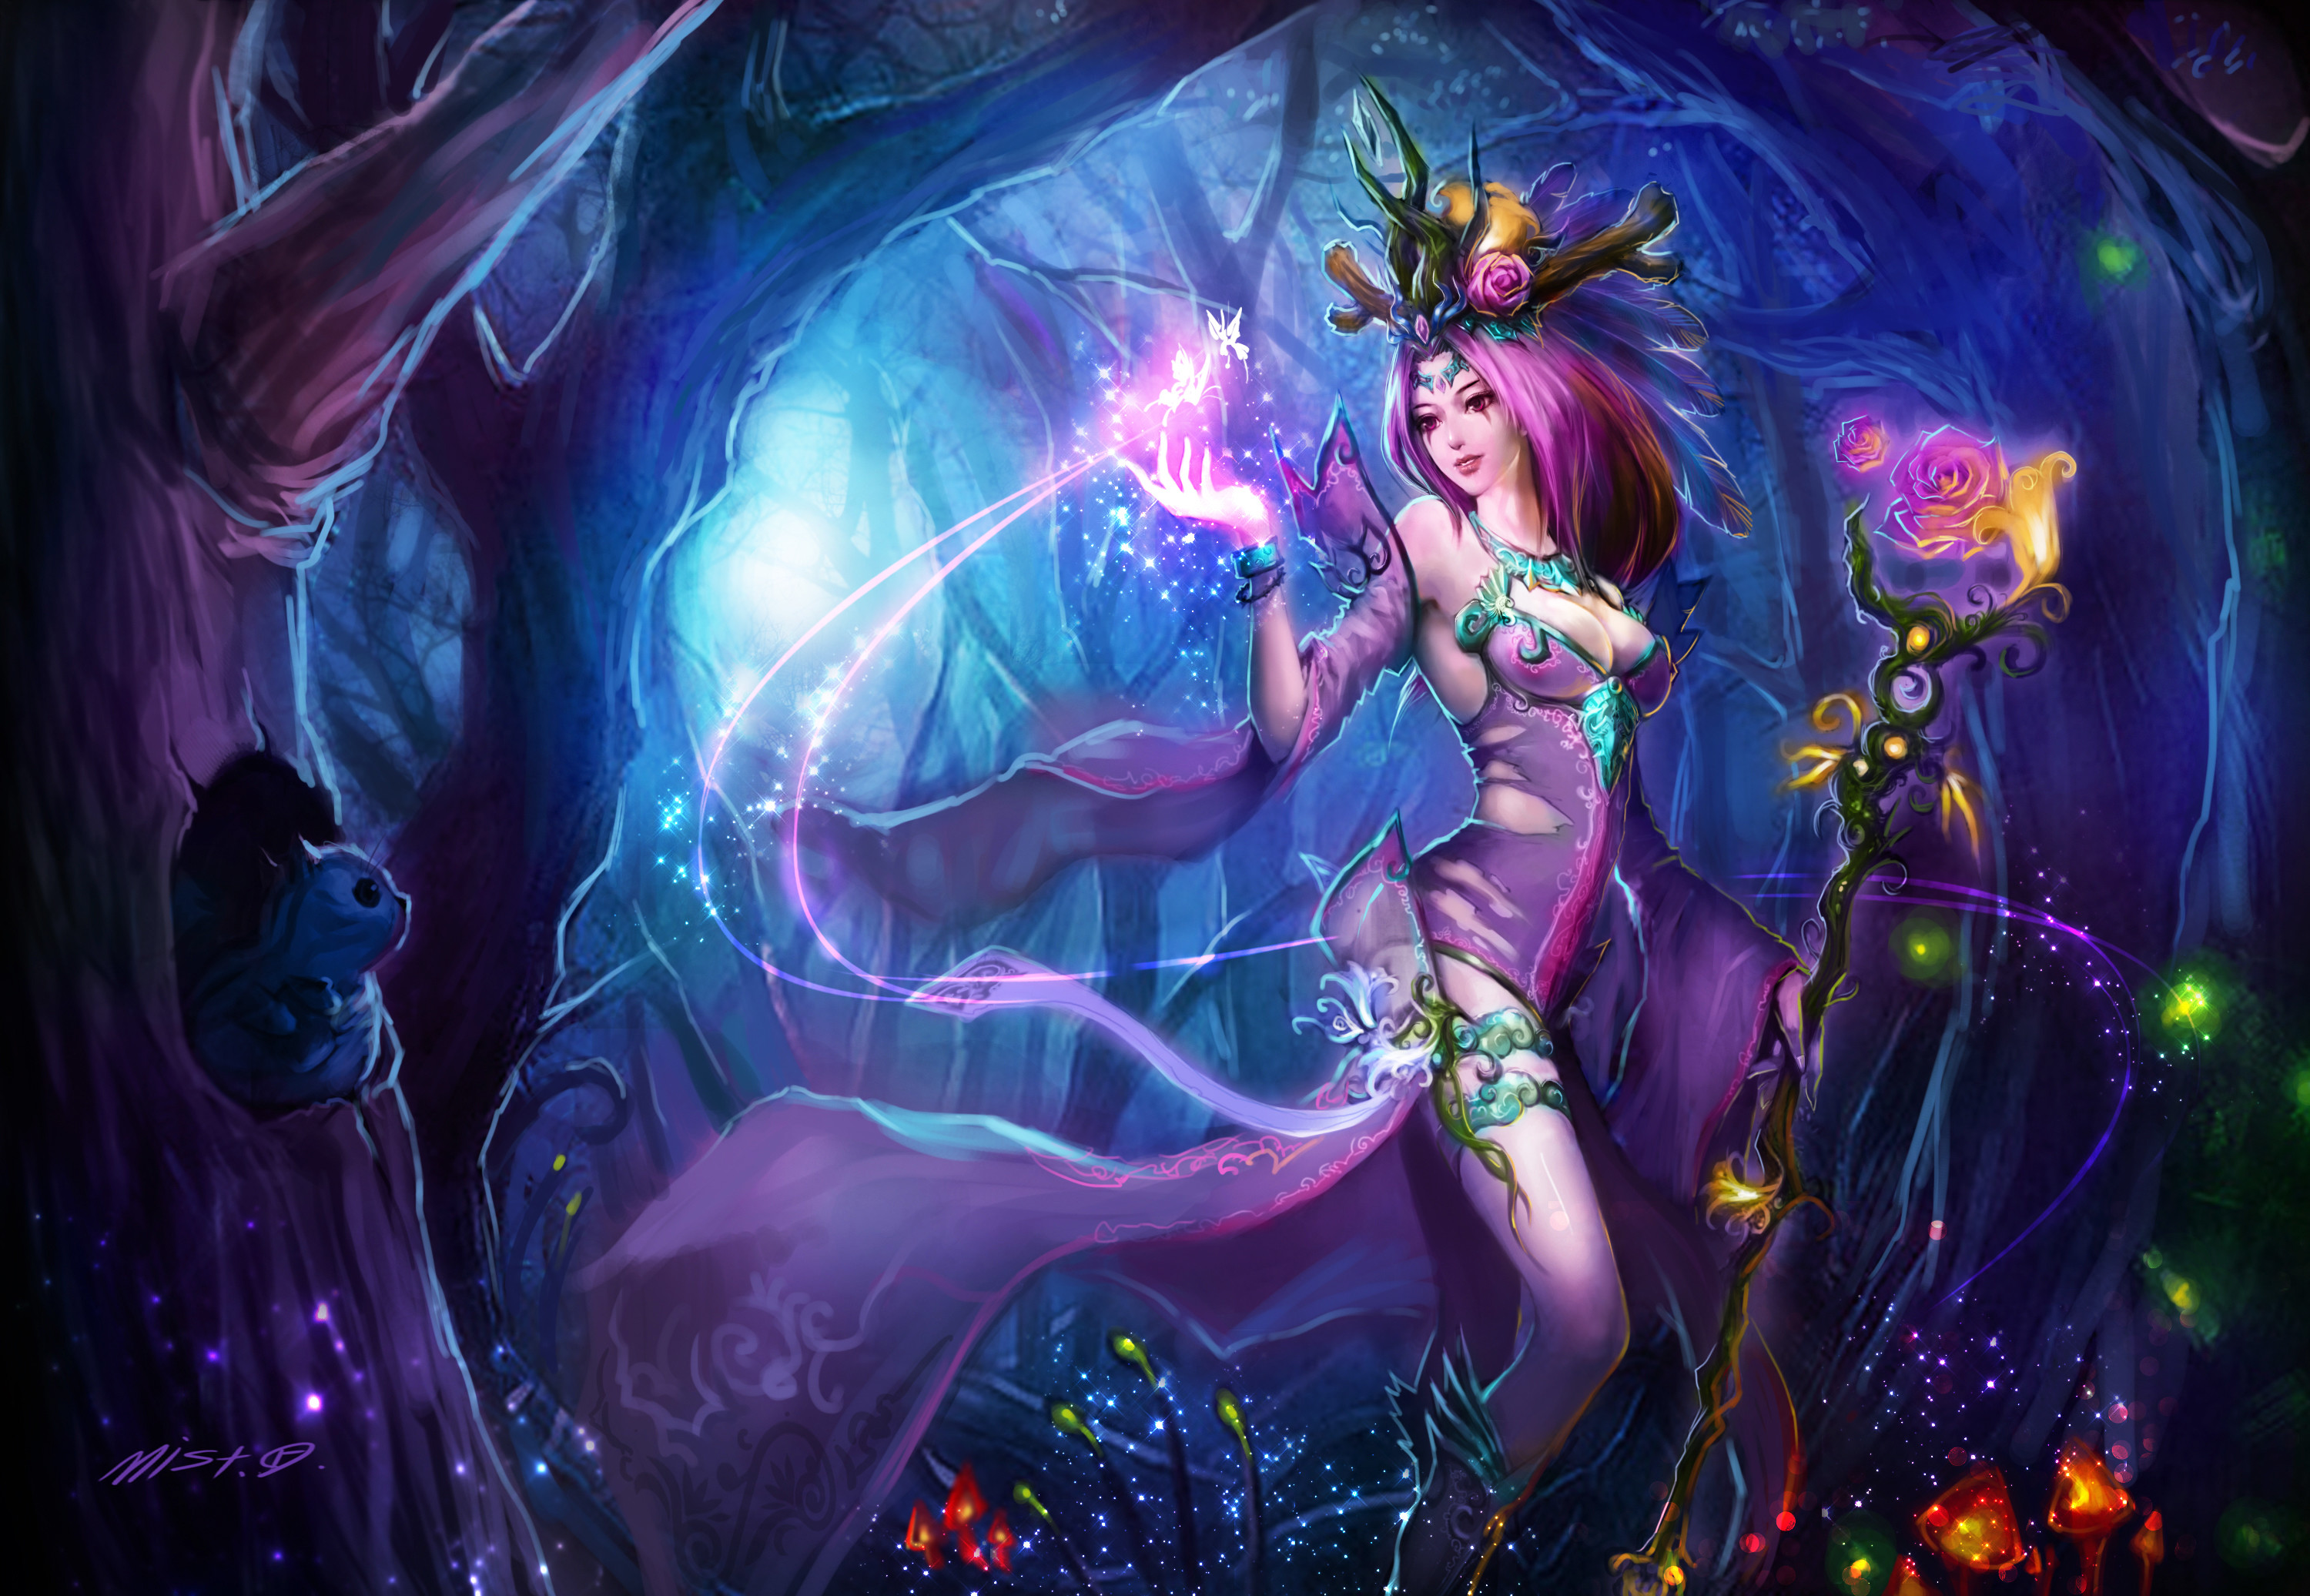 Dark Fairy Picture Wallpapers High Resolution Wallpaper Water .